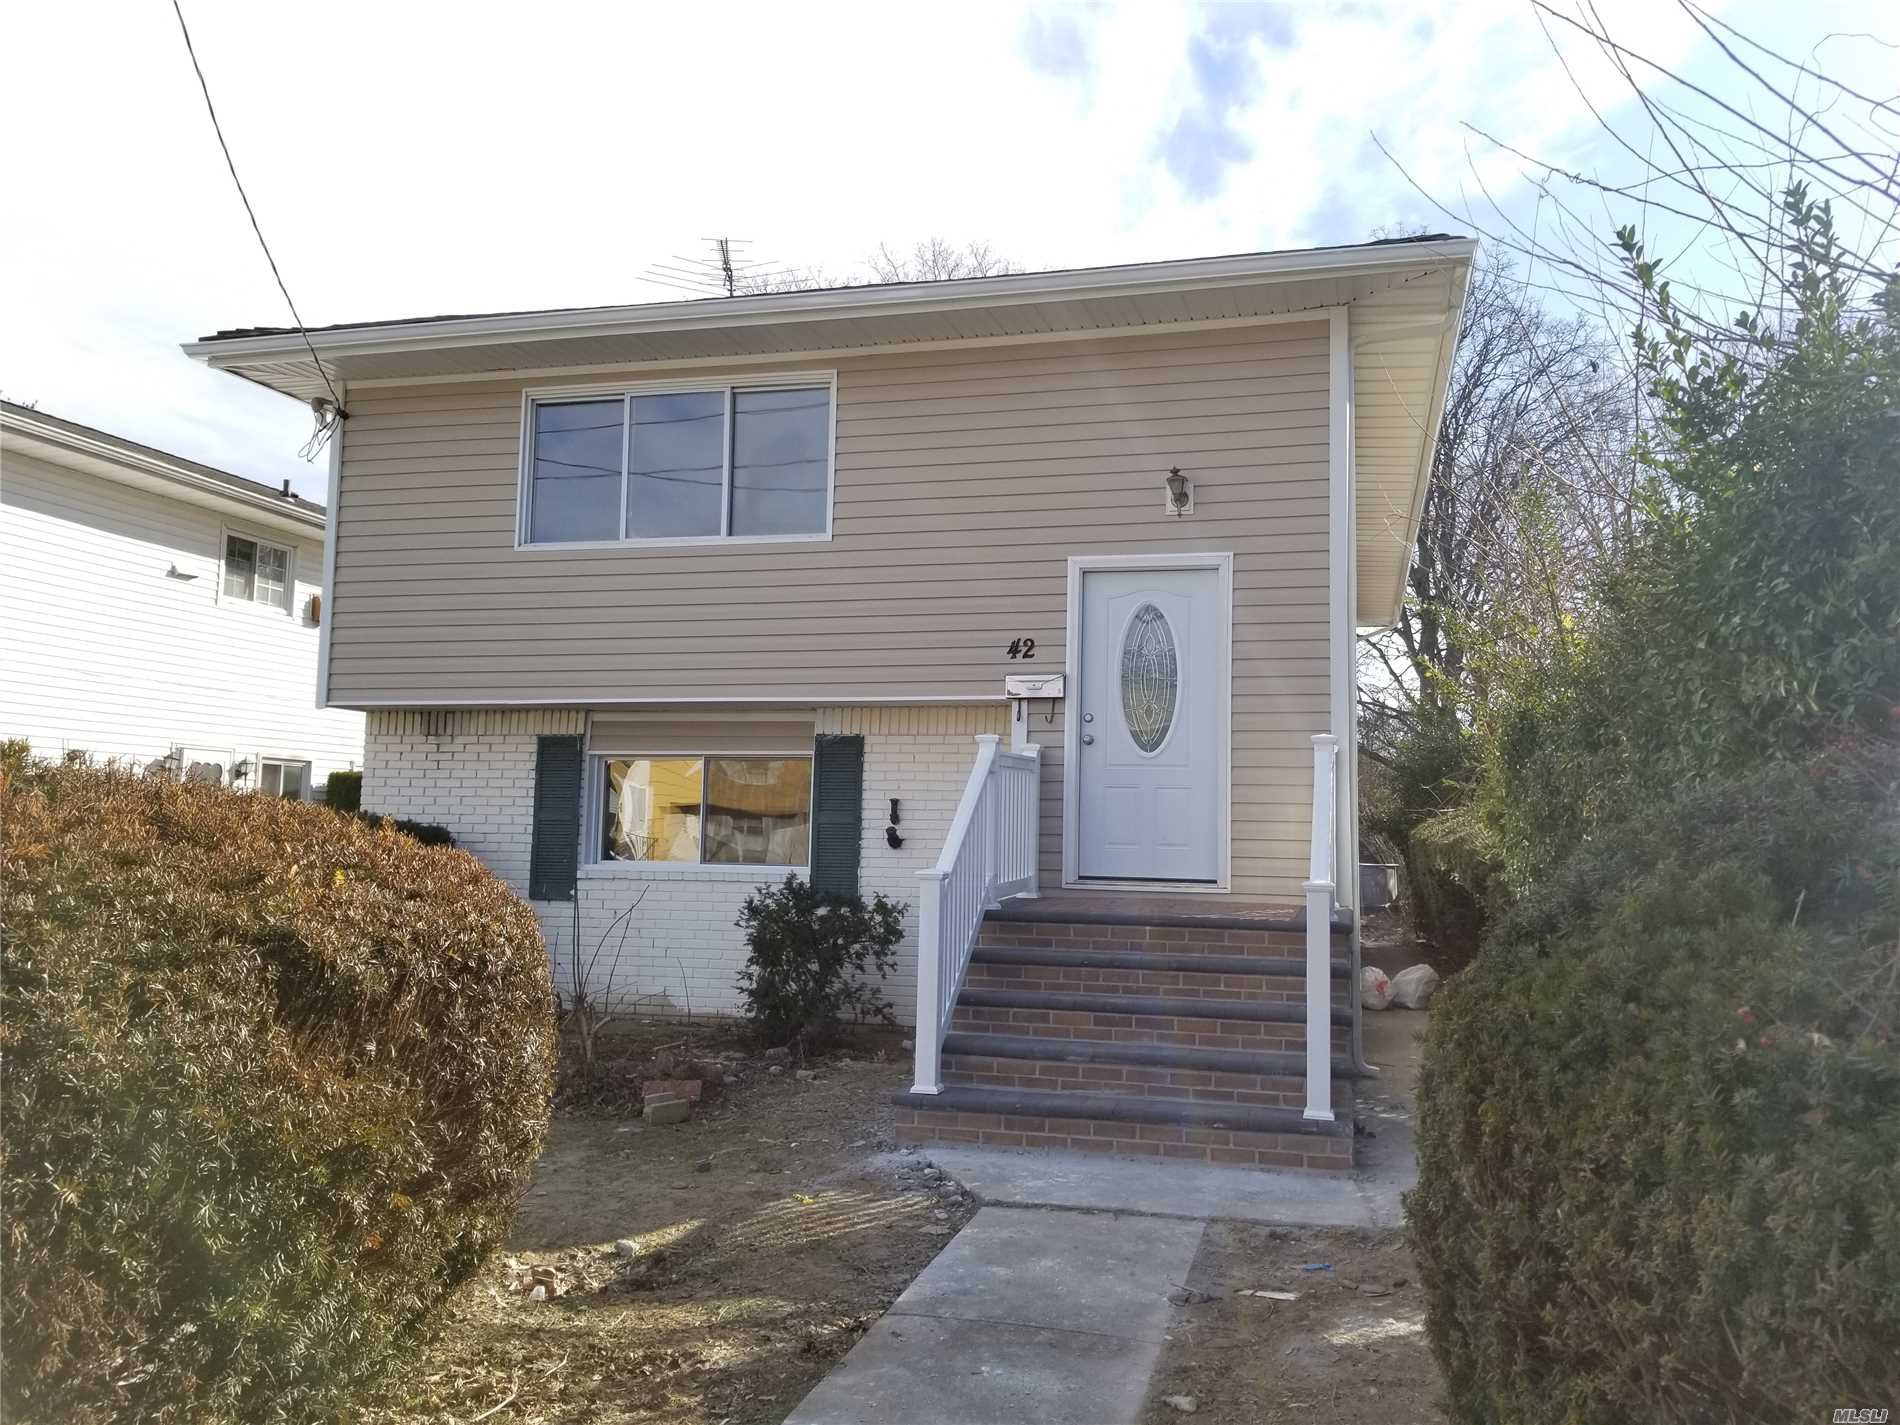 Newly Renovated Home For Sale. Beautiful Granite Kitchen With New Stainless Steel Appliances! 3 Bedroom 1 Bath With Finished Basement And Full Bathroom. Huge Backyard As Well.